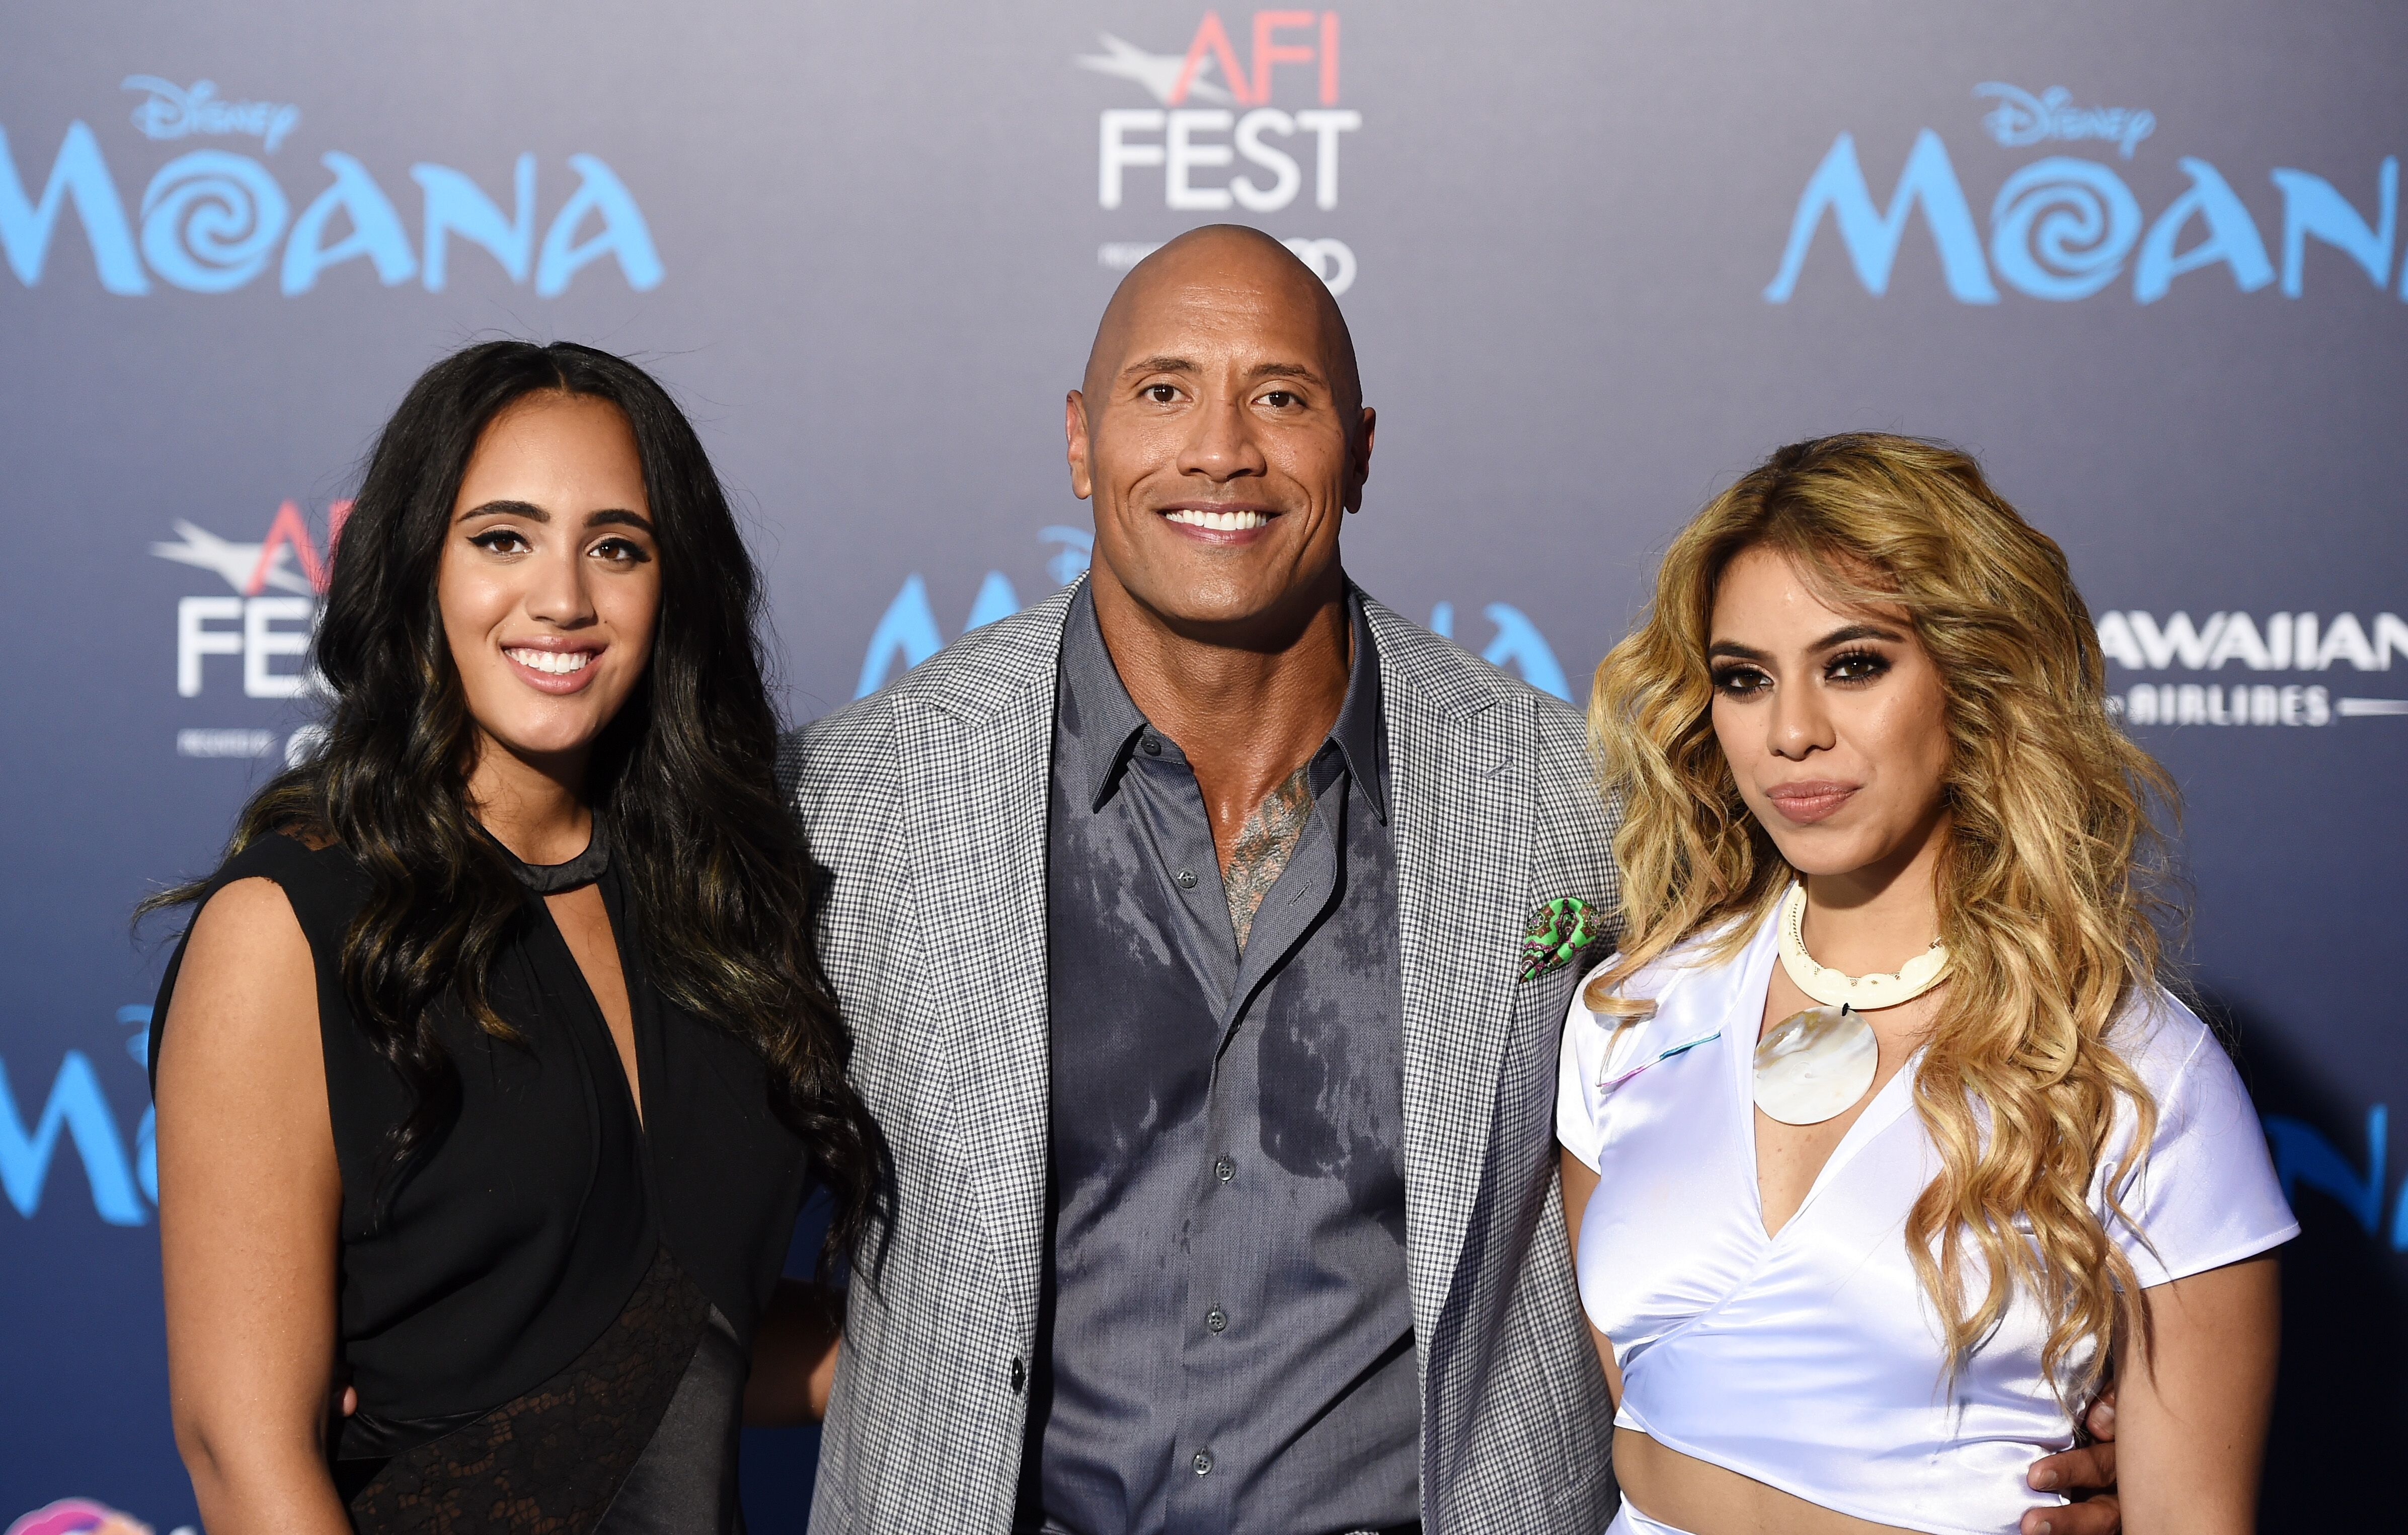 """HOLLYWOOD, CA - NOVEMBER 14: (L-R) Simone Alexandra Johnson, actor Dwayne Johnson and singer Dinah Jane Hansen arrive at the AFI FEST 2016 Presented By Audi premiere of Disney's """"Moana"""" at the El Capitan Theatre on November 14, 2016 in Hollywood, California. (Photo by Amanda Edwards/WireImage)"""